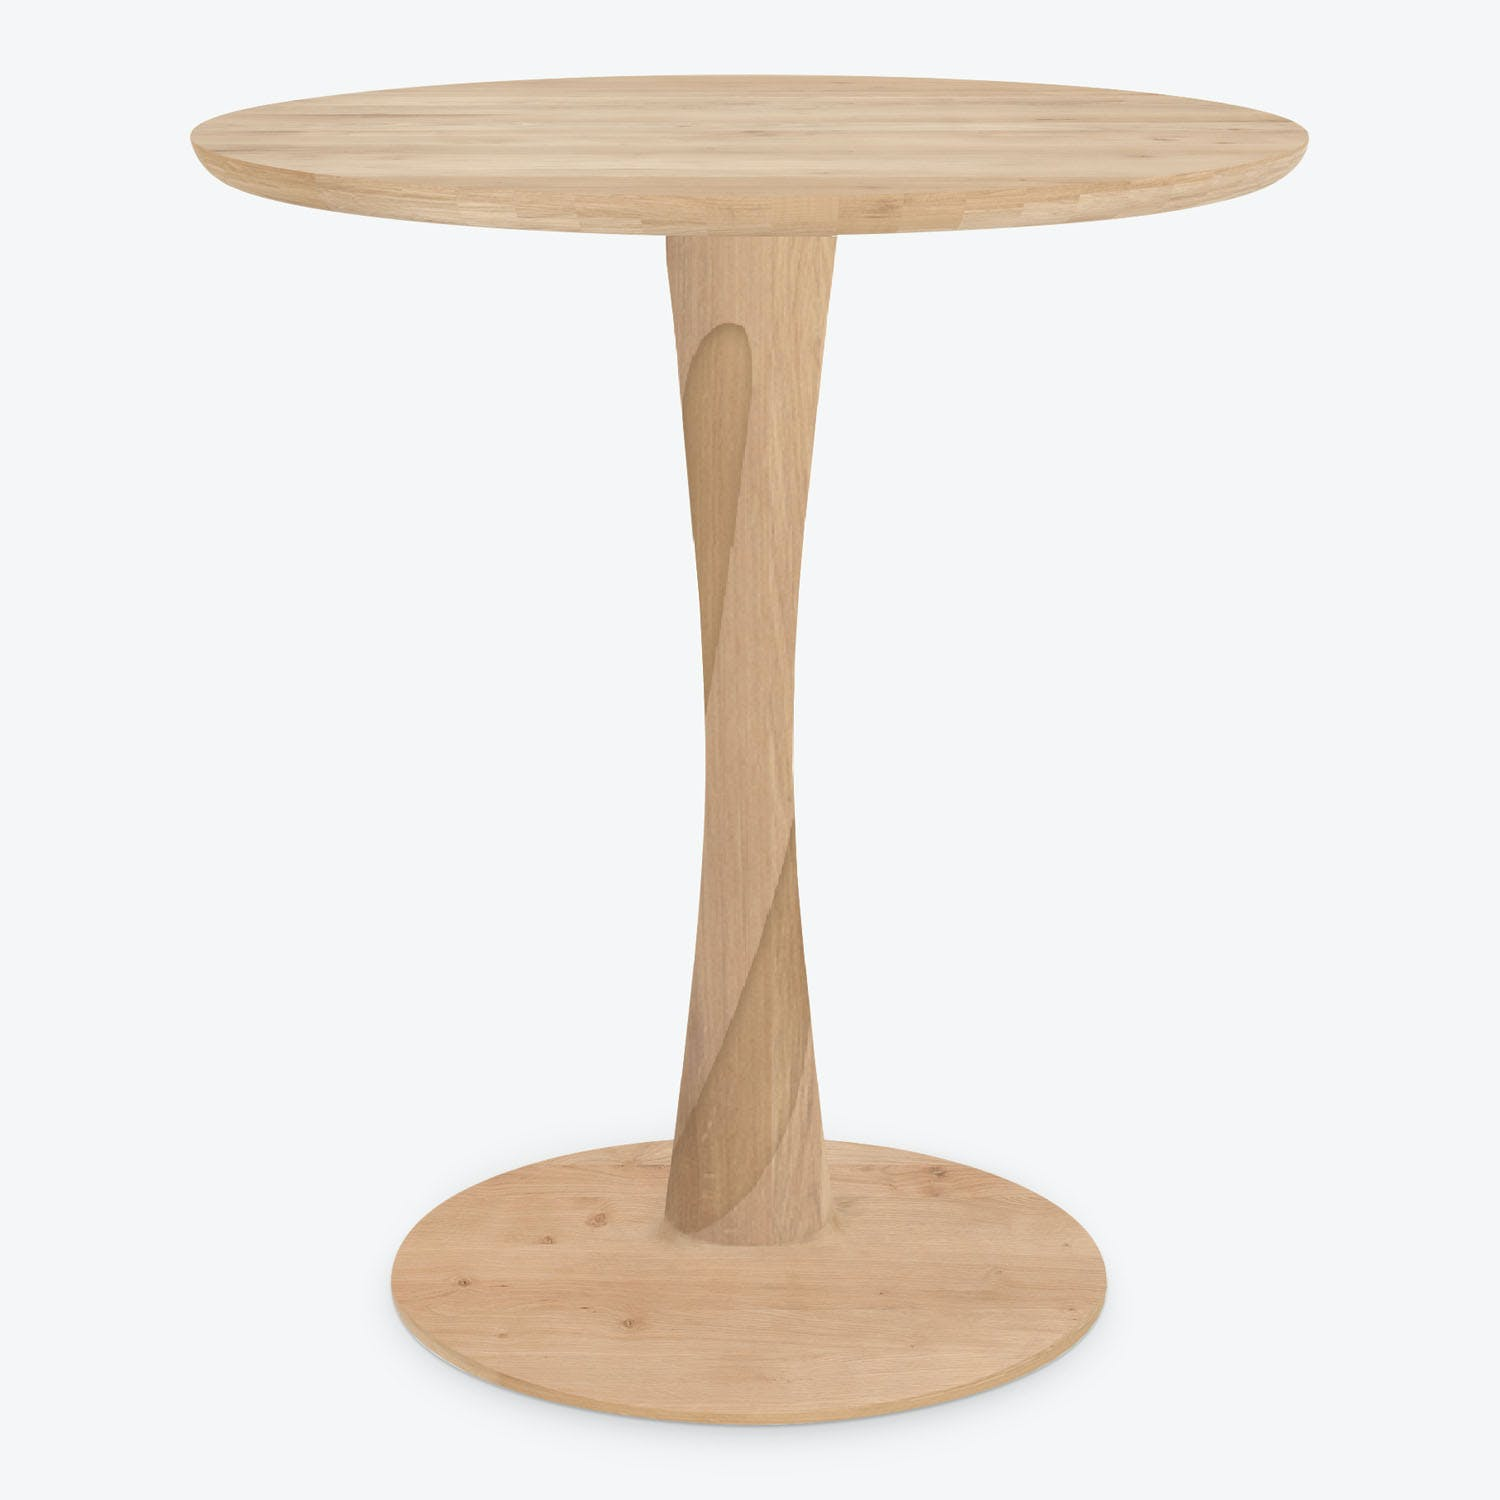 Ethnicraft Small Torsion Natural Oak Round Dining Table